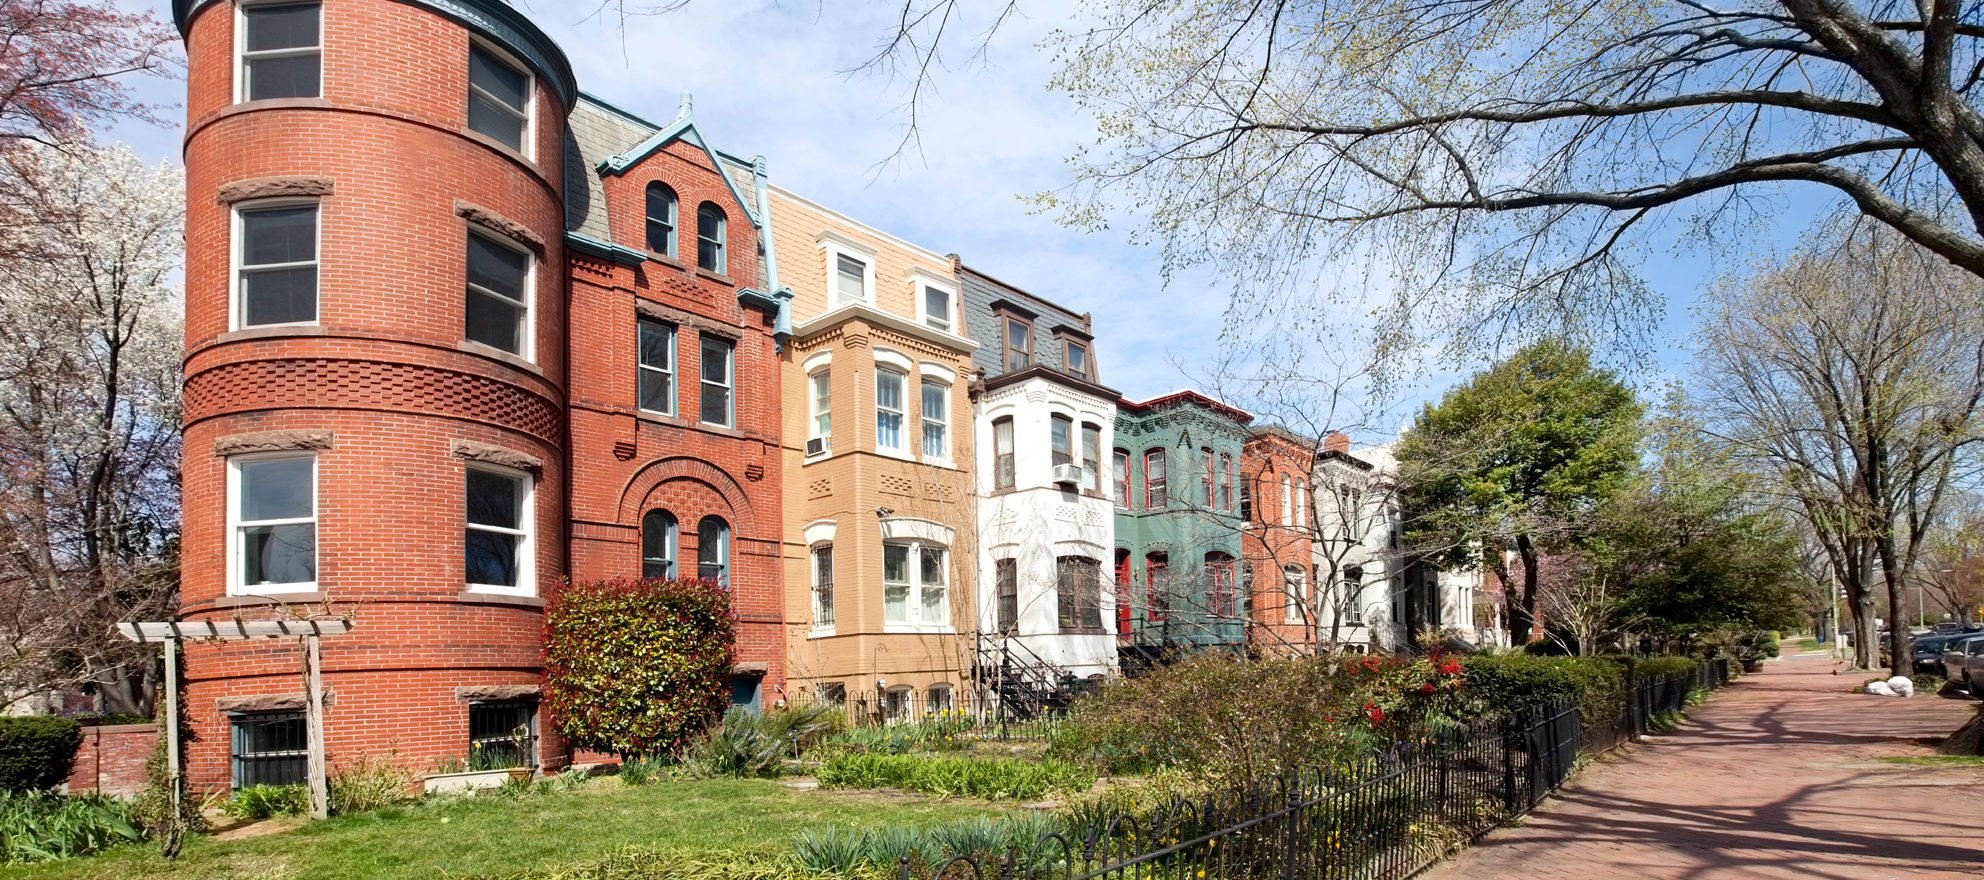 Home prices in DC